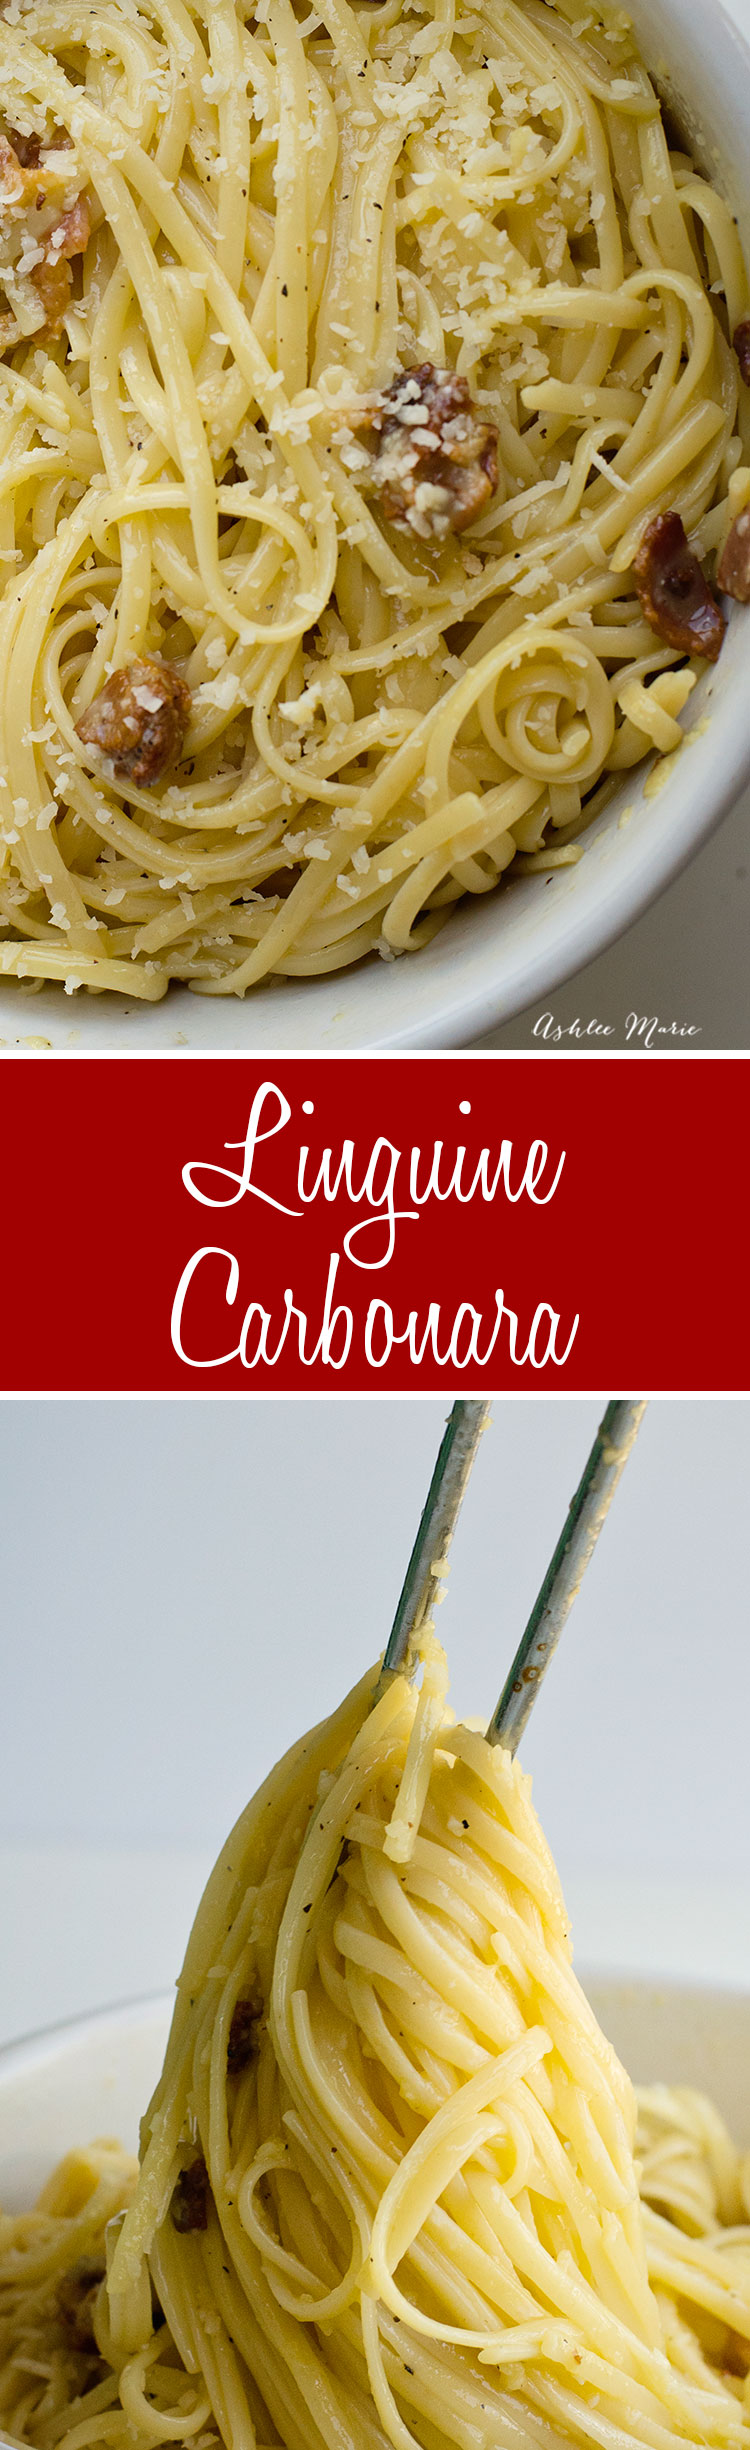 A quick and easy pasta dinner this carbonara is 5 ingredients and takes 10 mins to make - easy and delicious